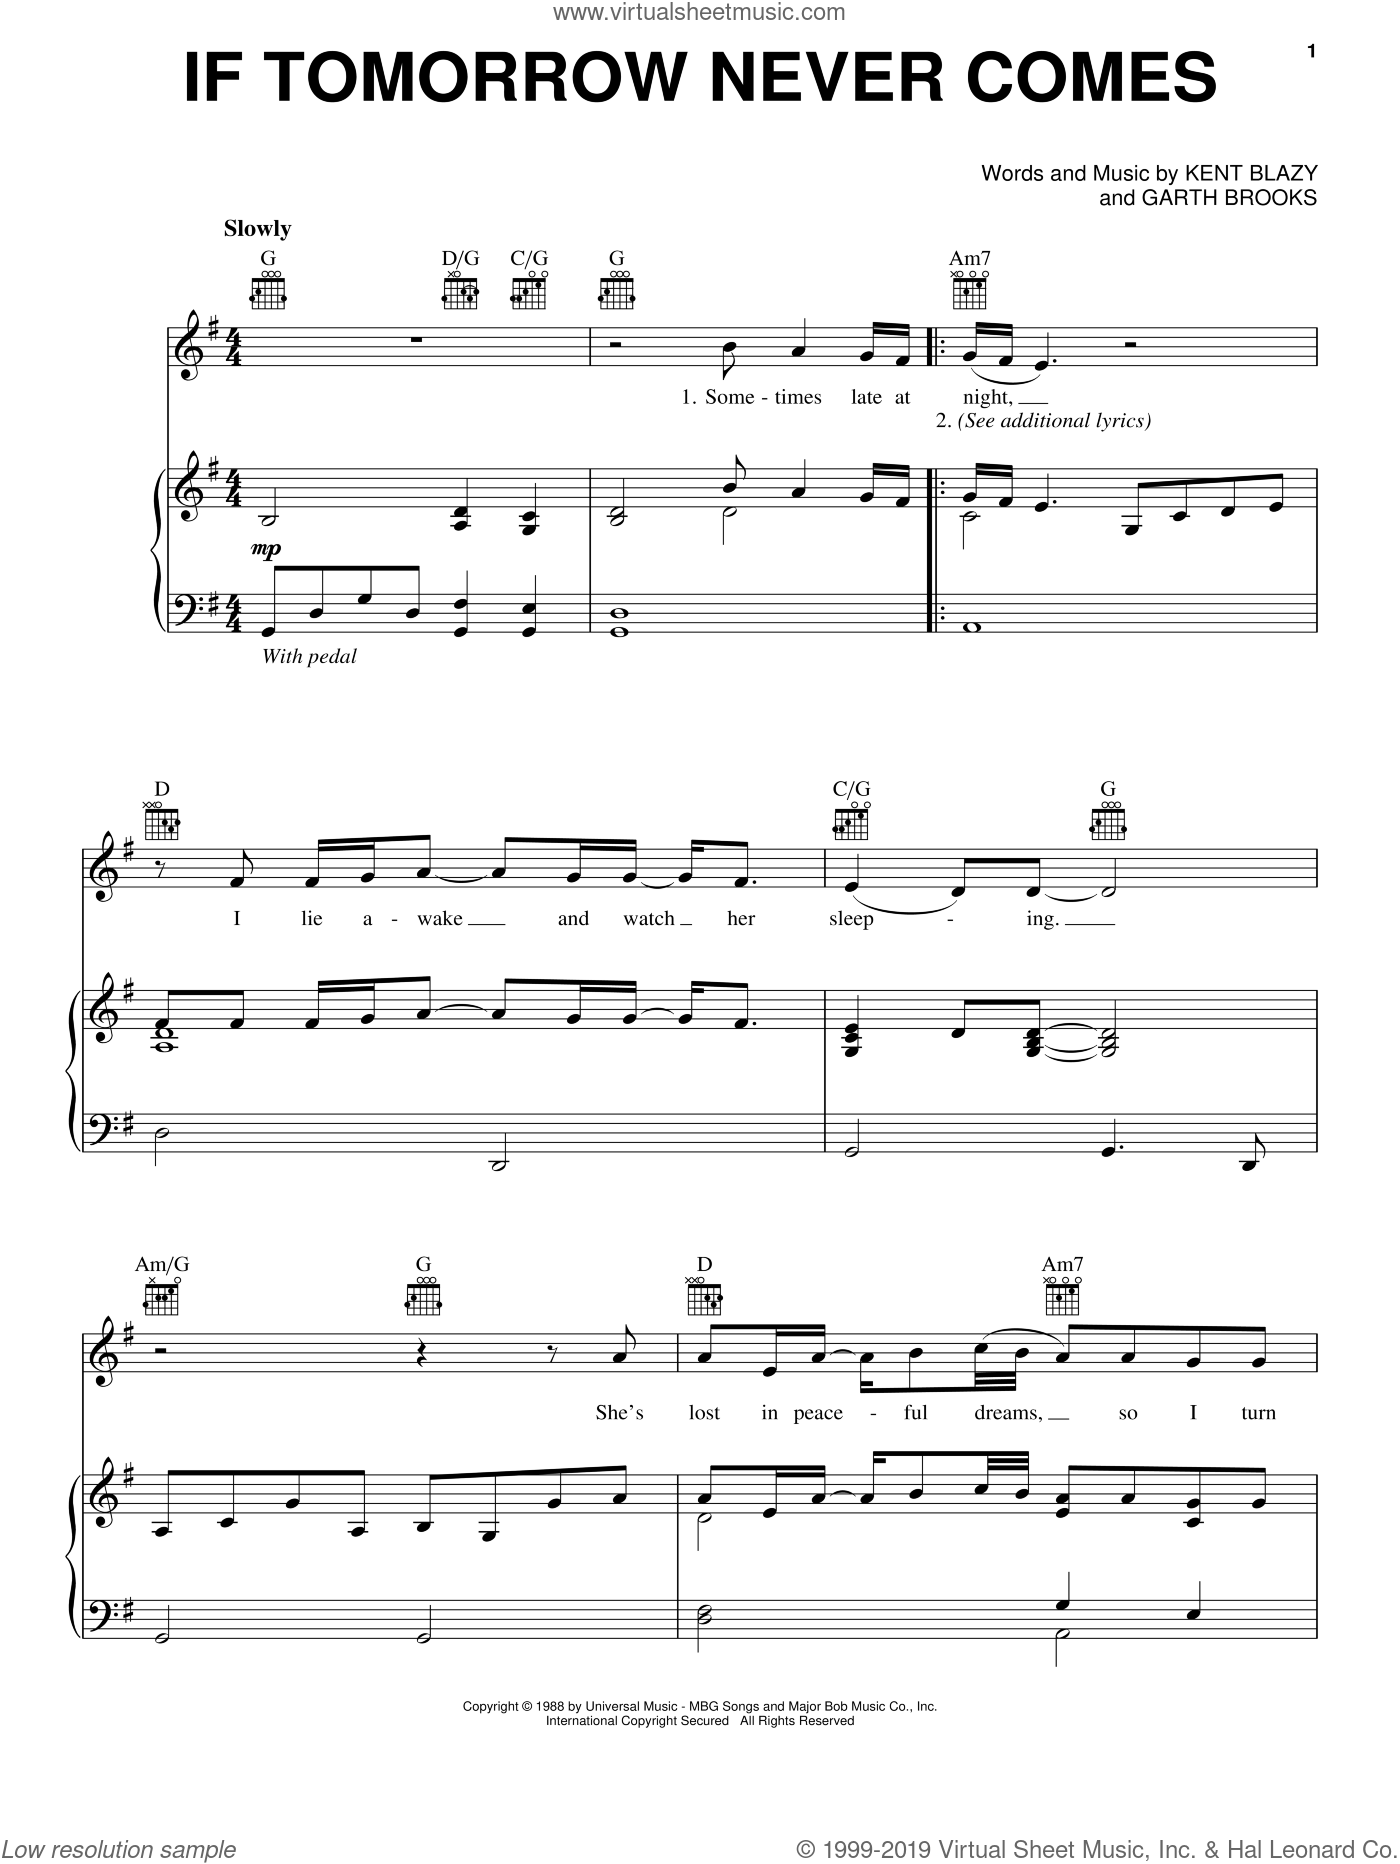 If Tomorrow Never Comes sheet music for voice, piano or guitar by Garth Brooks and Kent Blazy, intermediate skill level